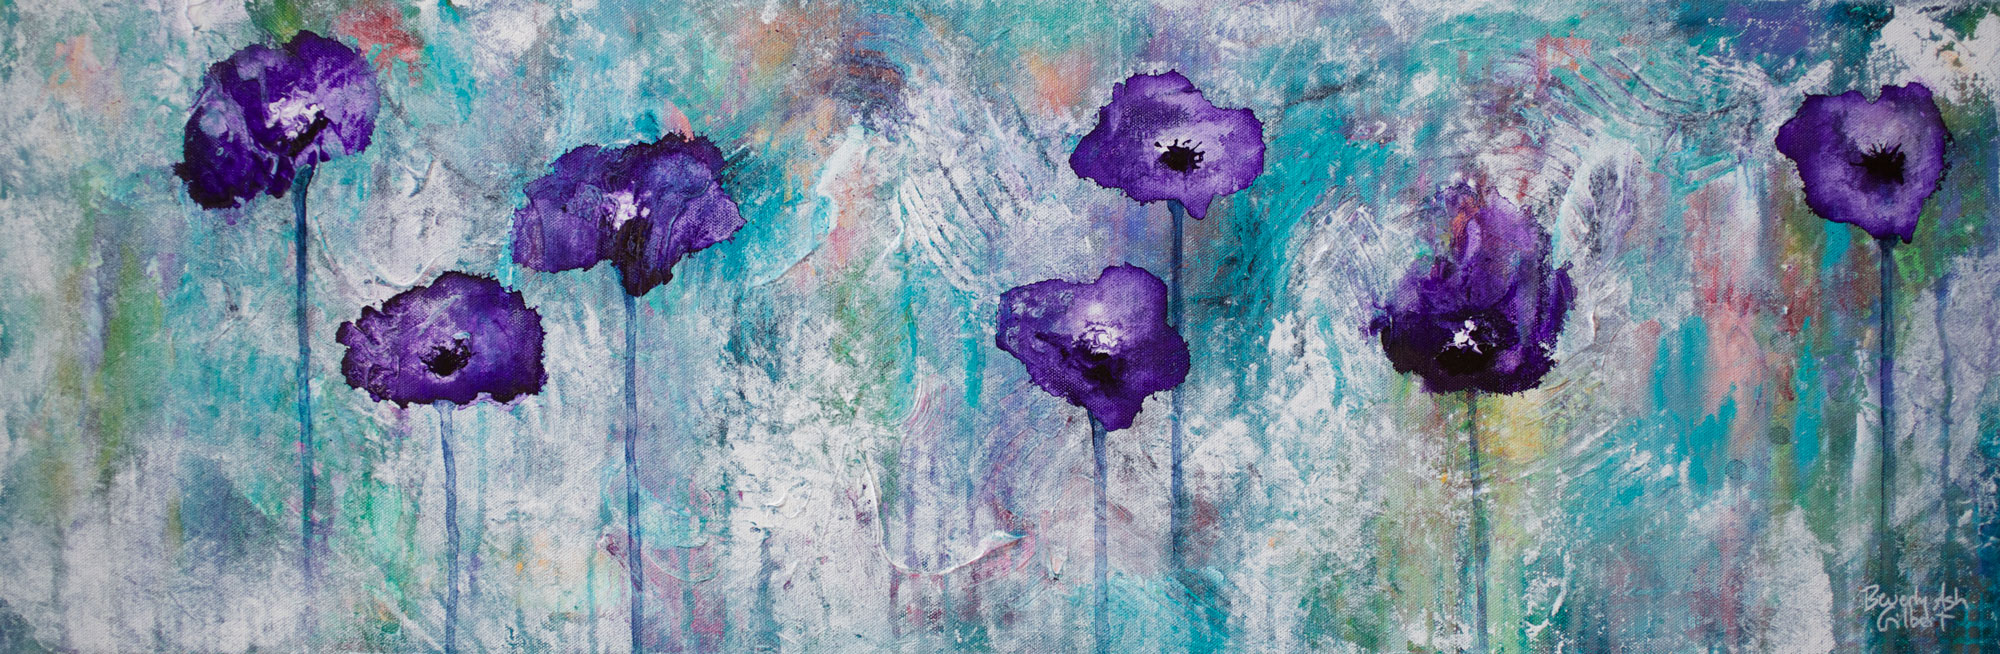 Carolyn's Flower Garden - Blooms Painting Collection - Beverly Ash Gilbert